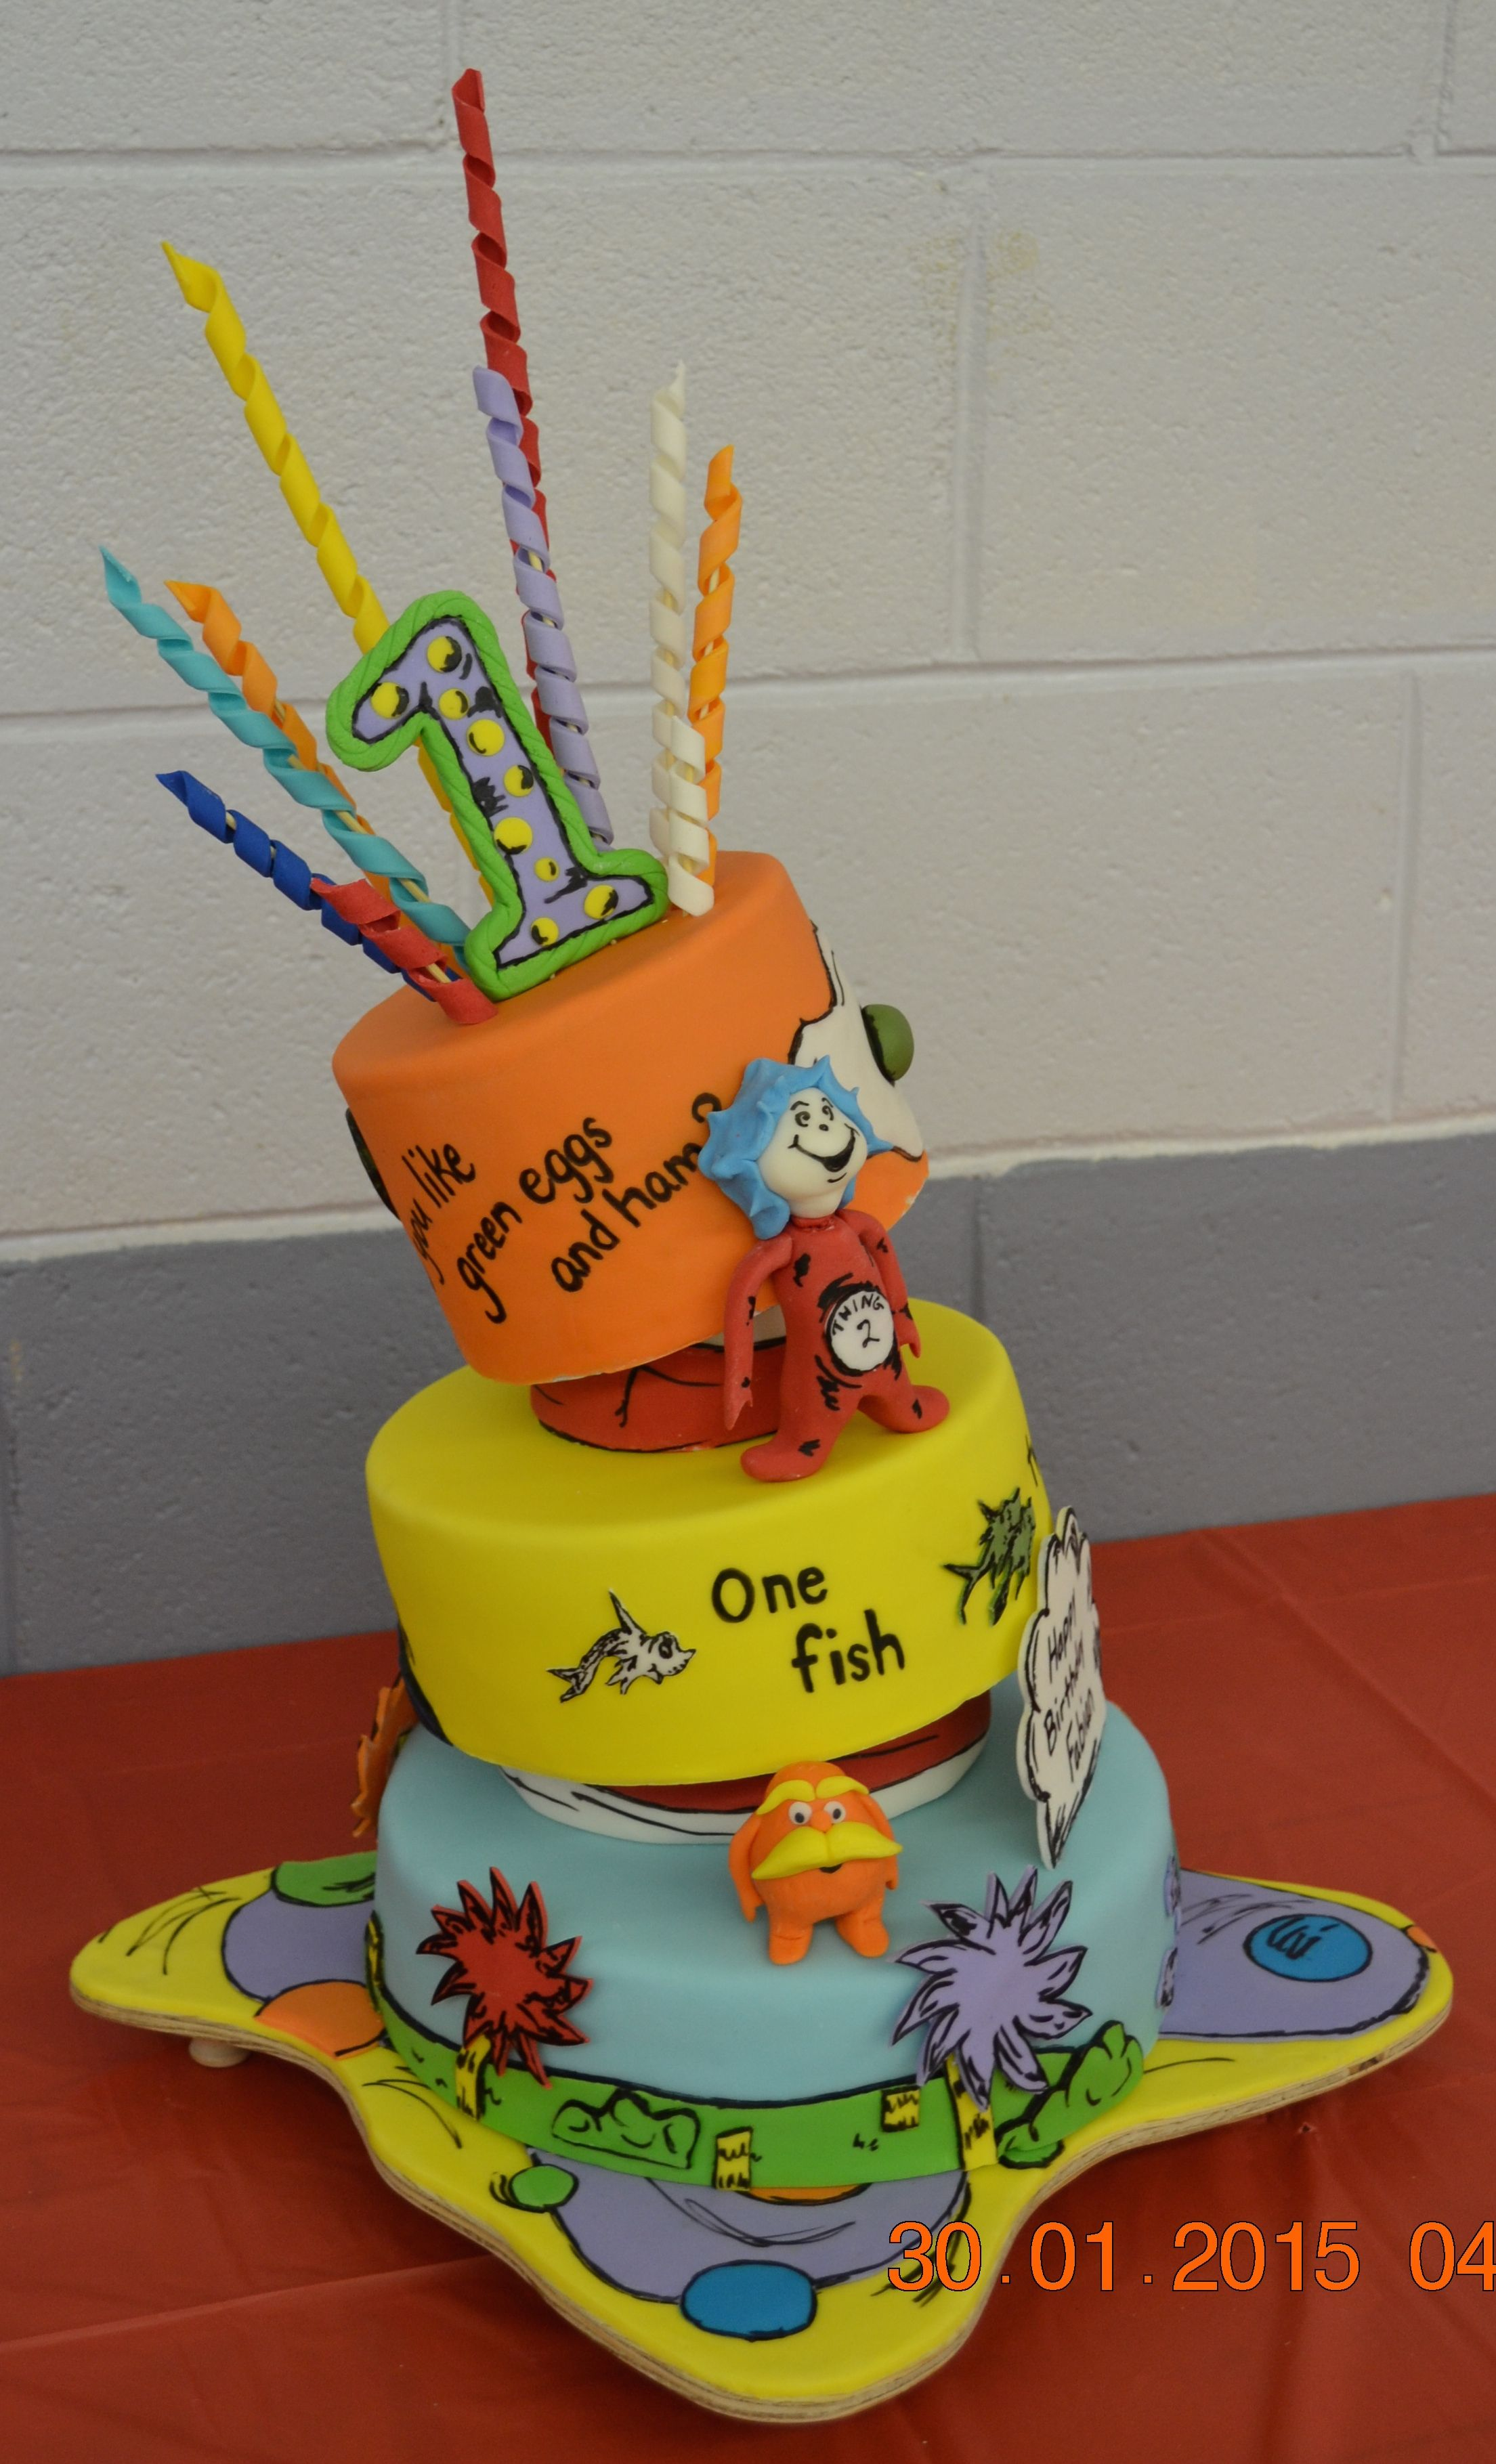 Dr Seuss cake featuring The Lorax Thing 1 2 Go Dog Go Green